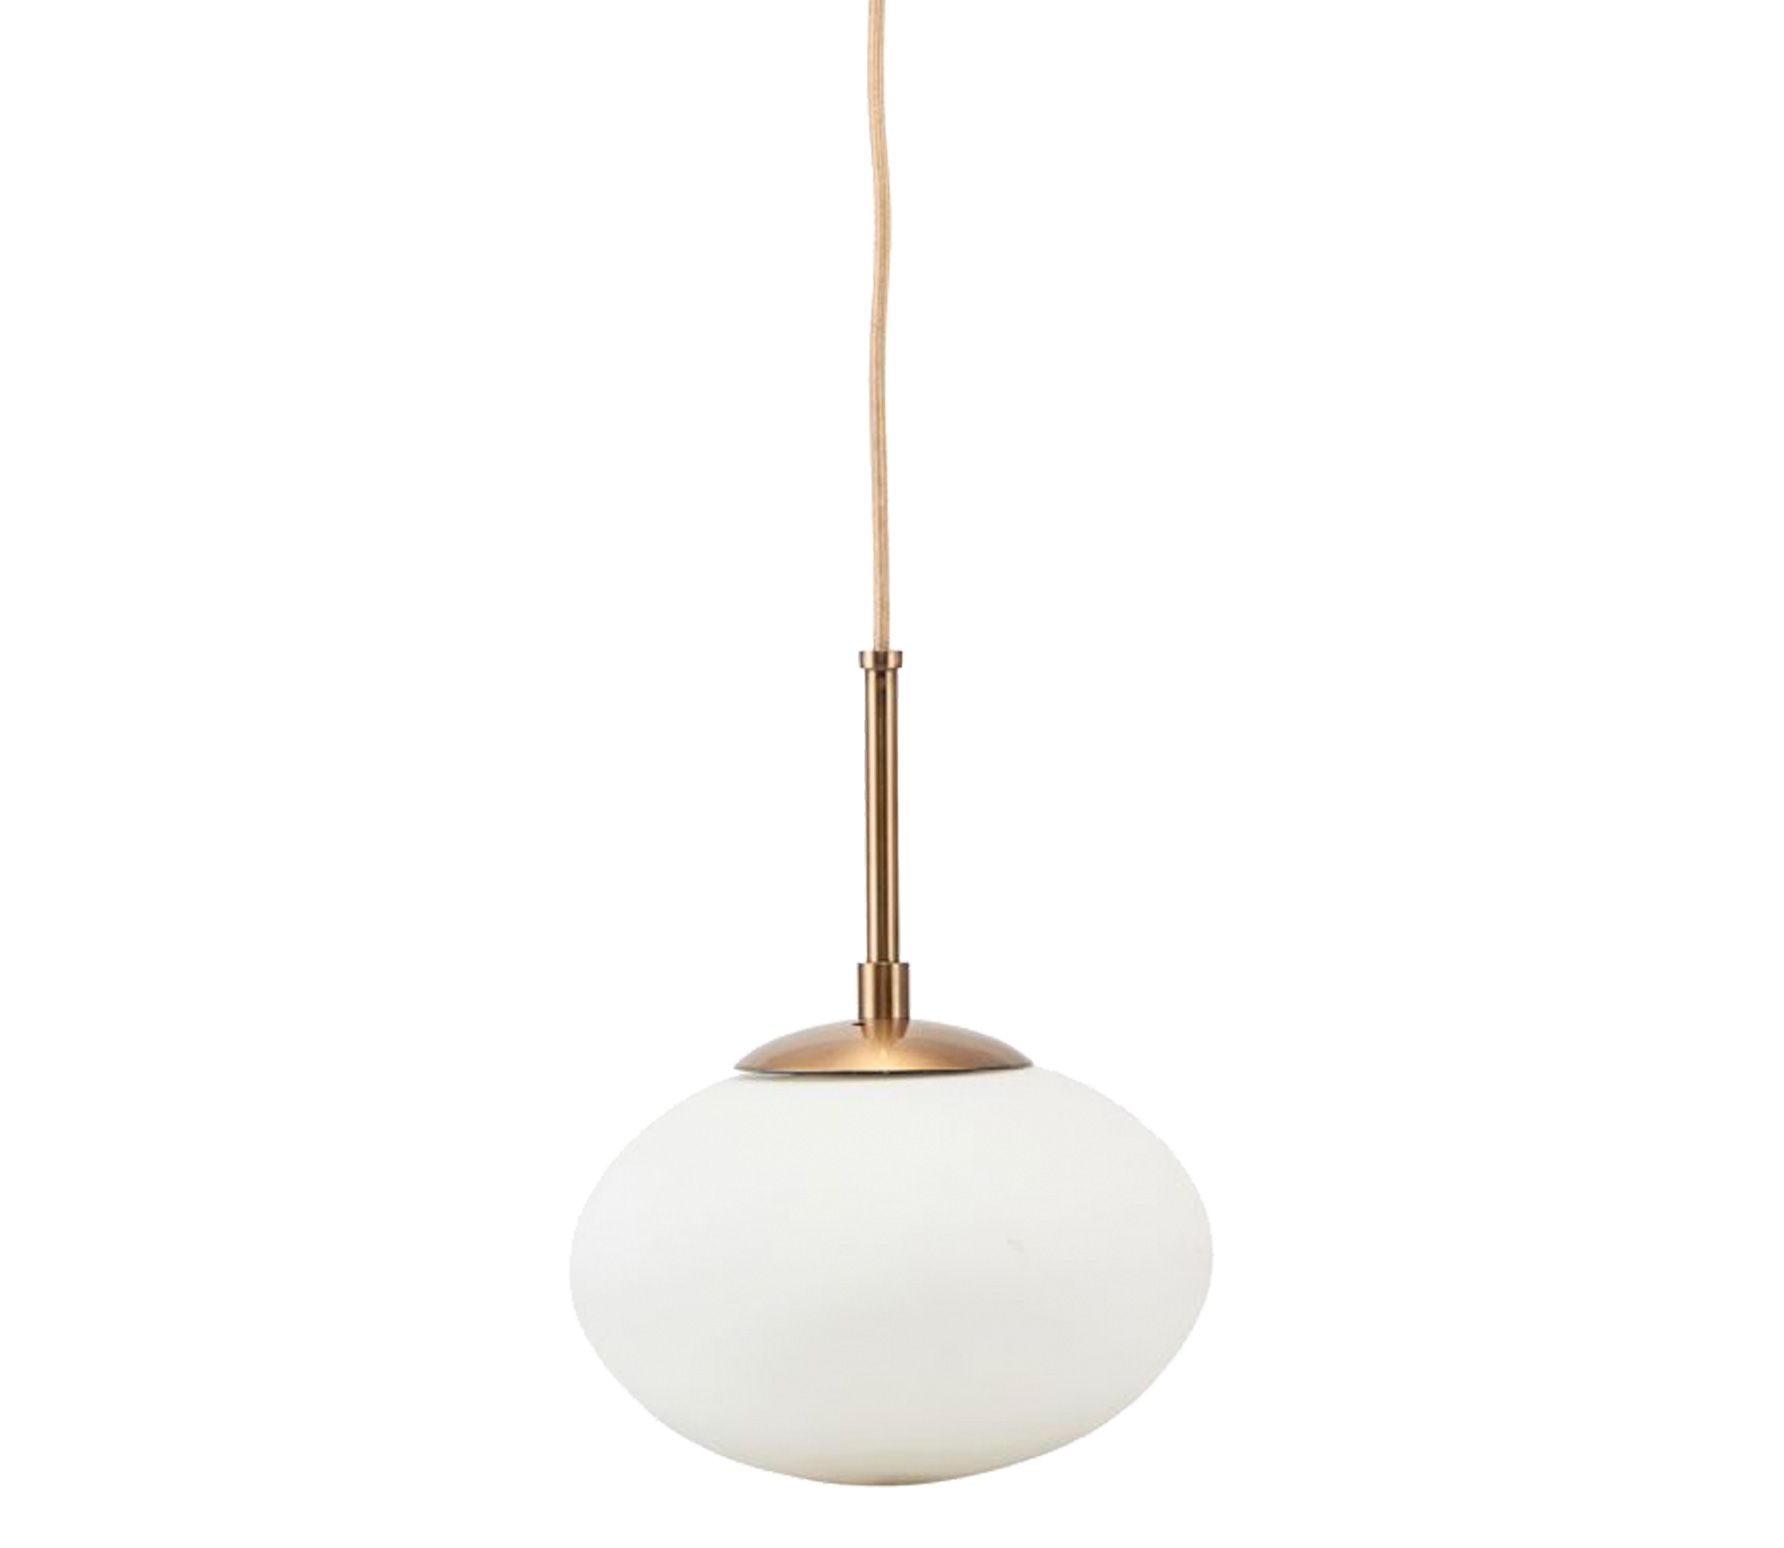 Housedoctor Opal hanglamp wit brass 22 cm matglas